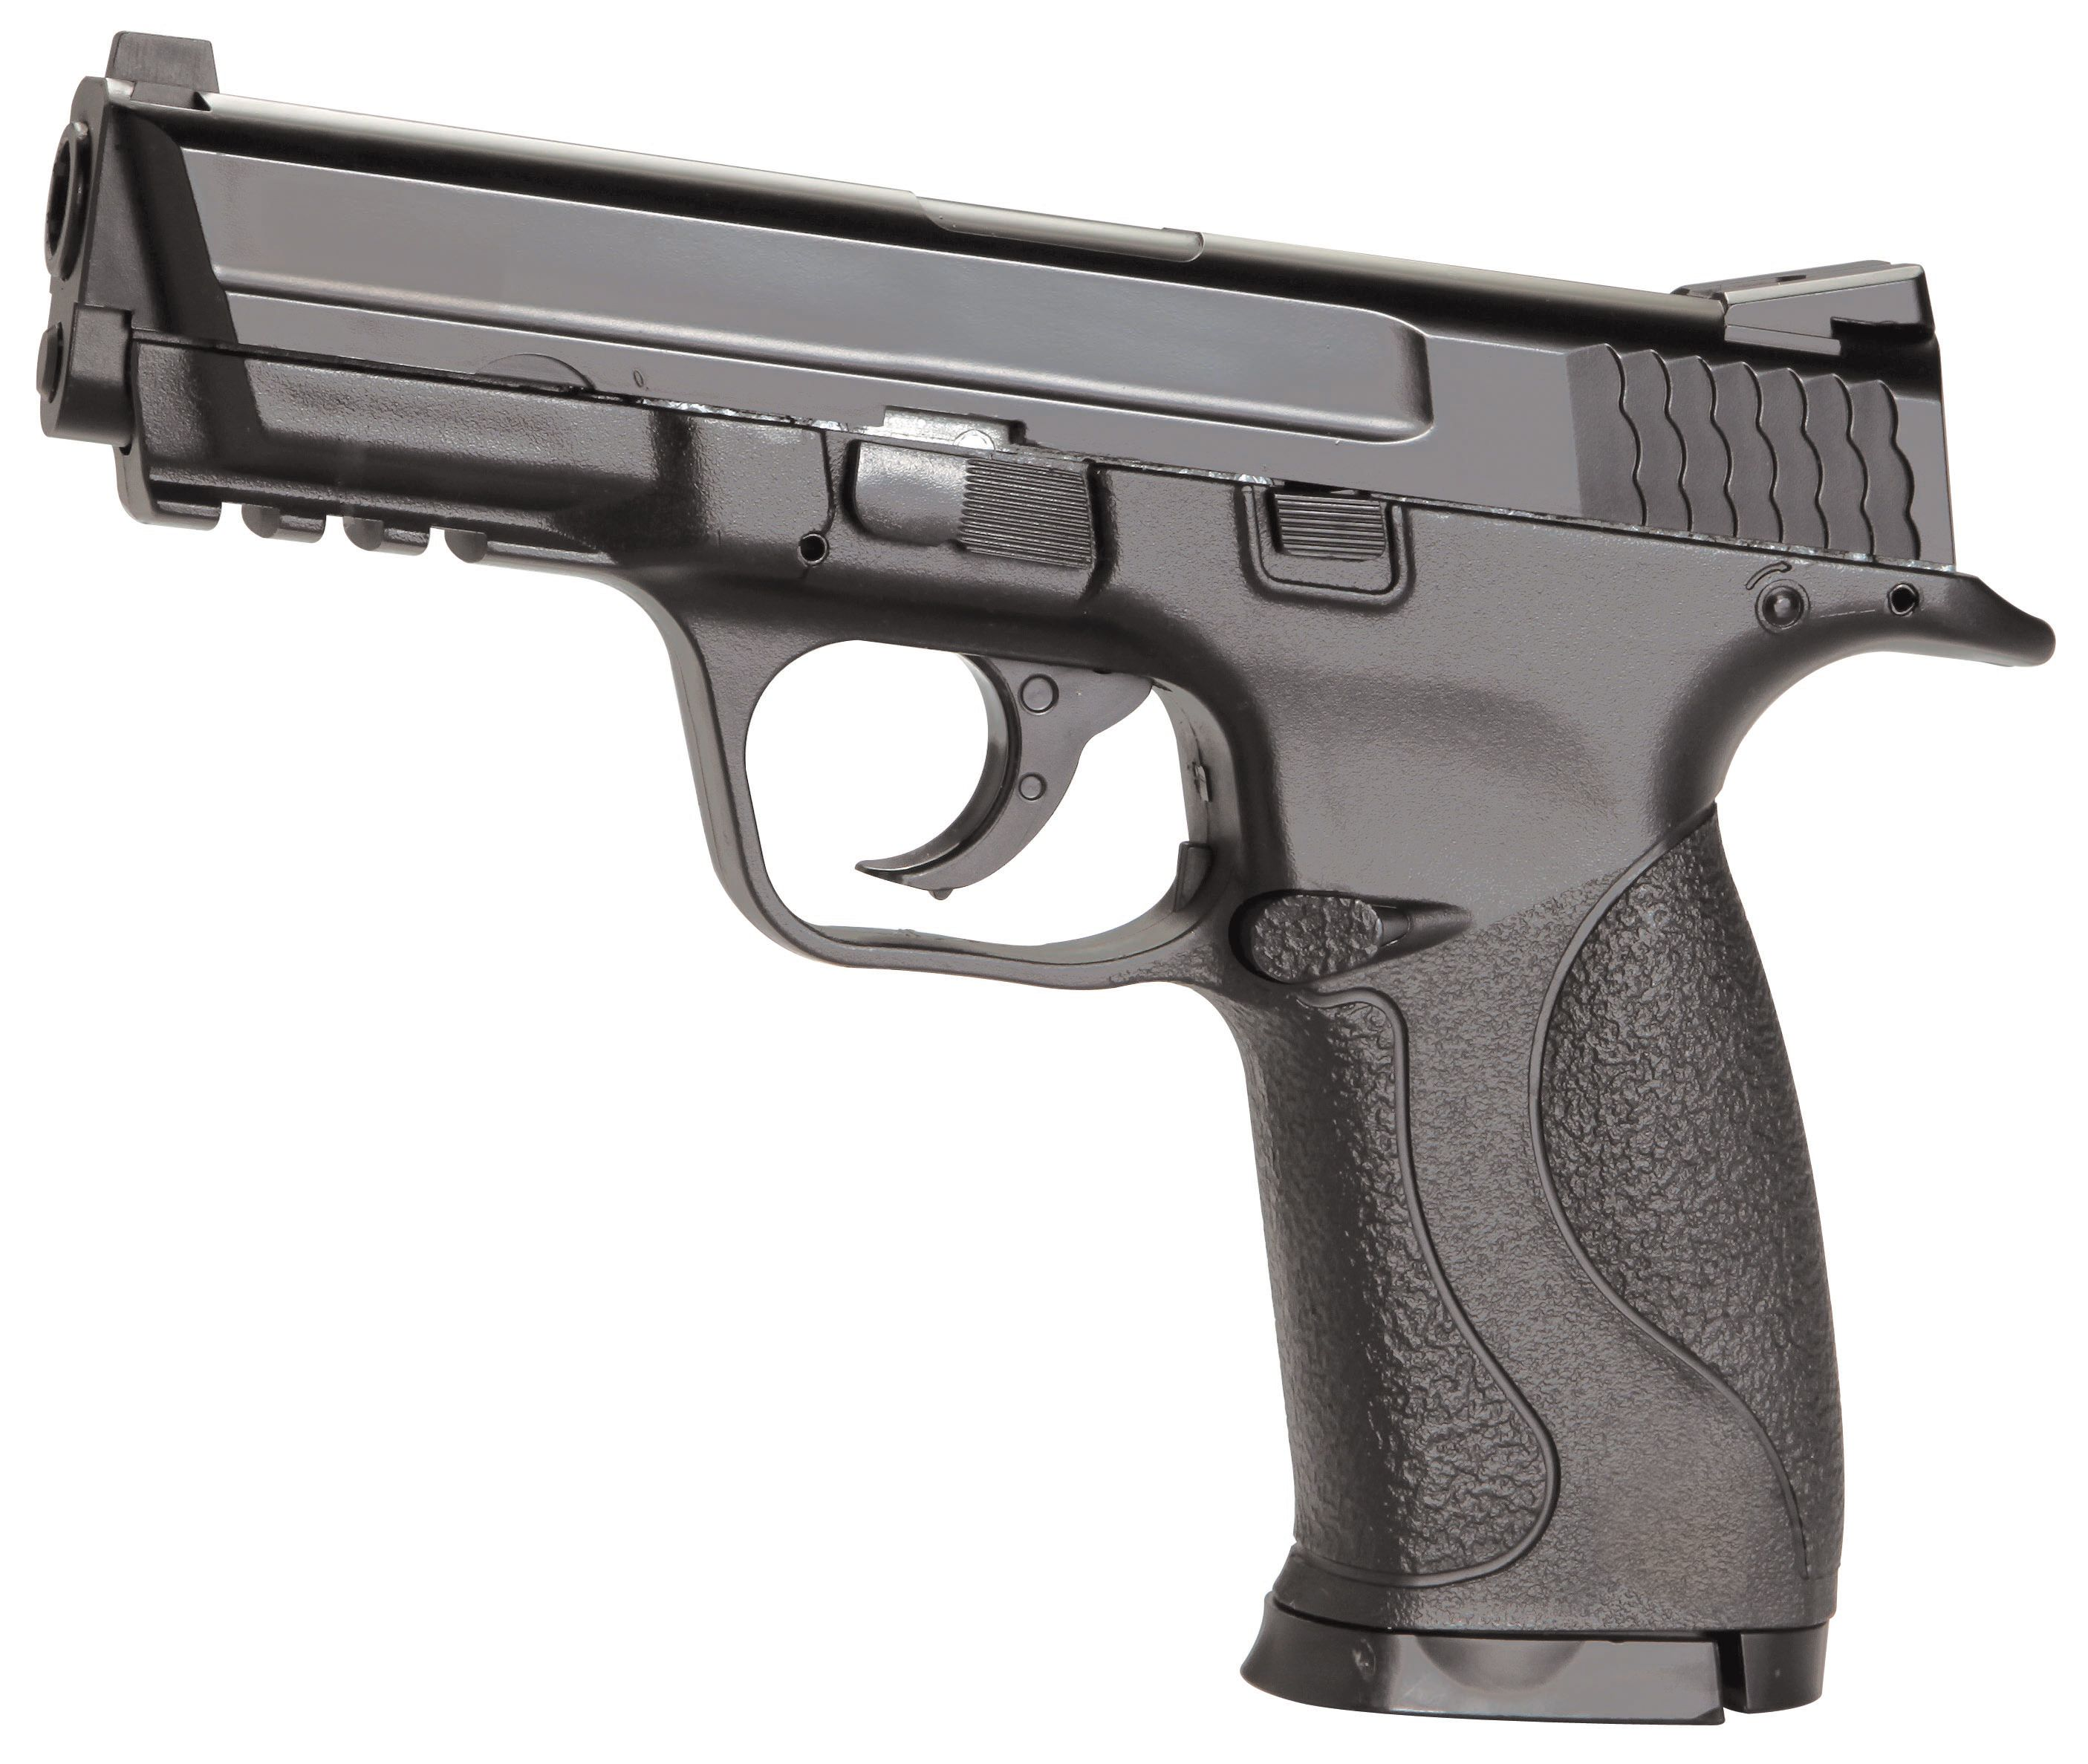 Pistola NP40 BLOW BACK CO2 4.5 METAL SLIDE KMB-48AHN